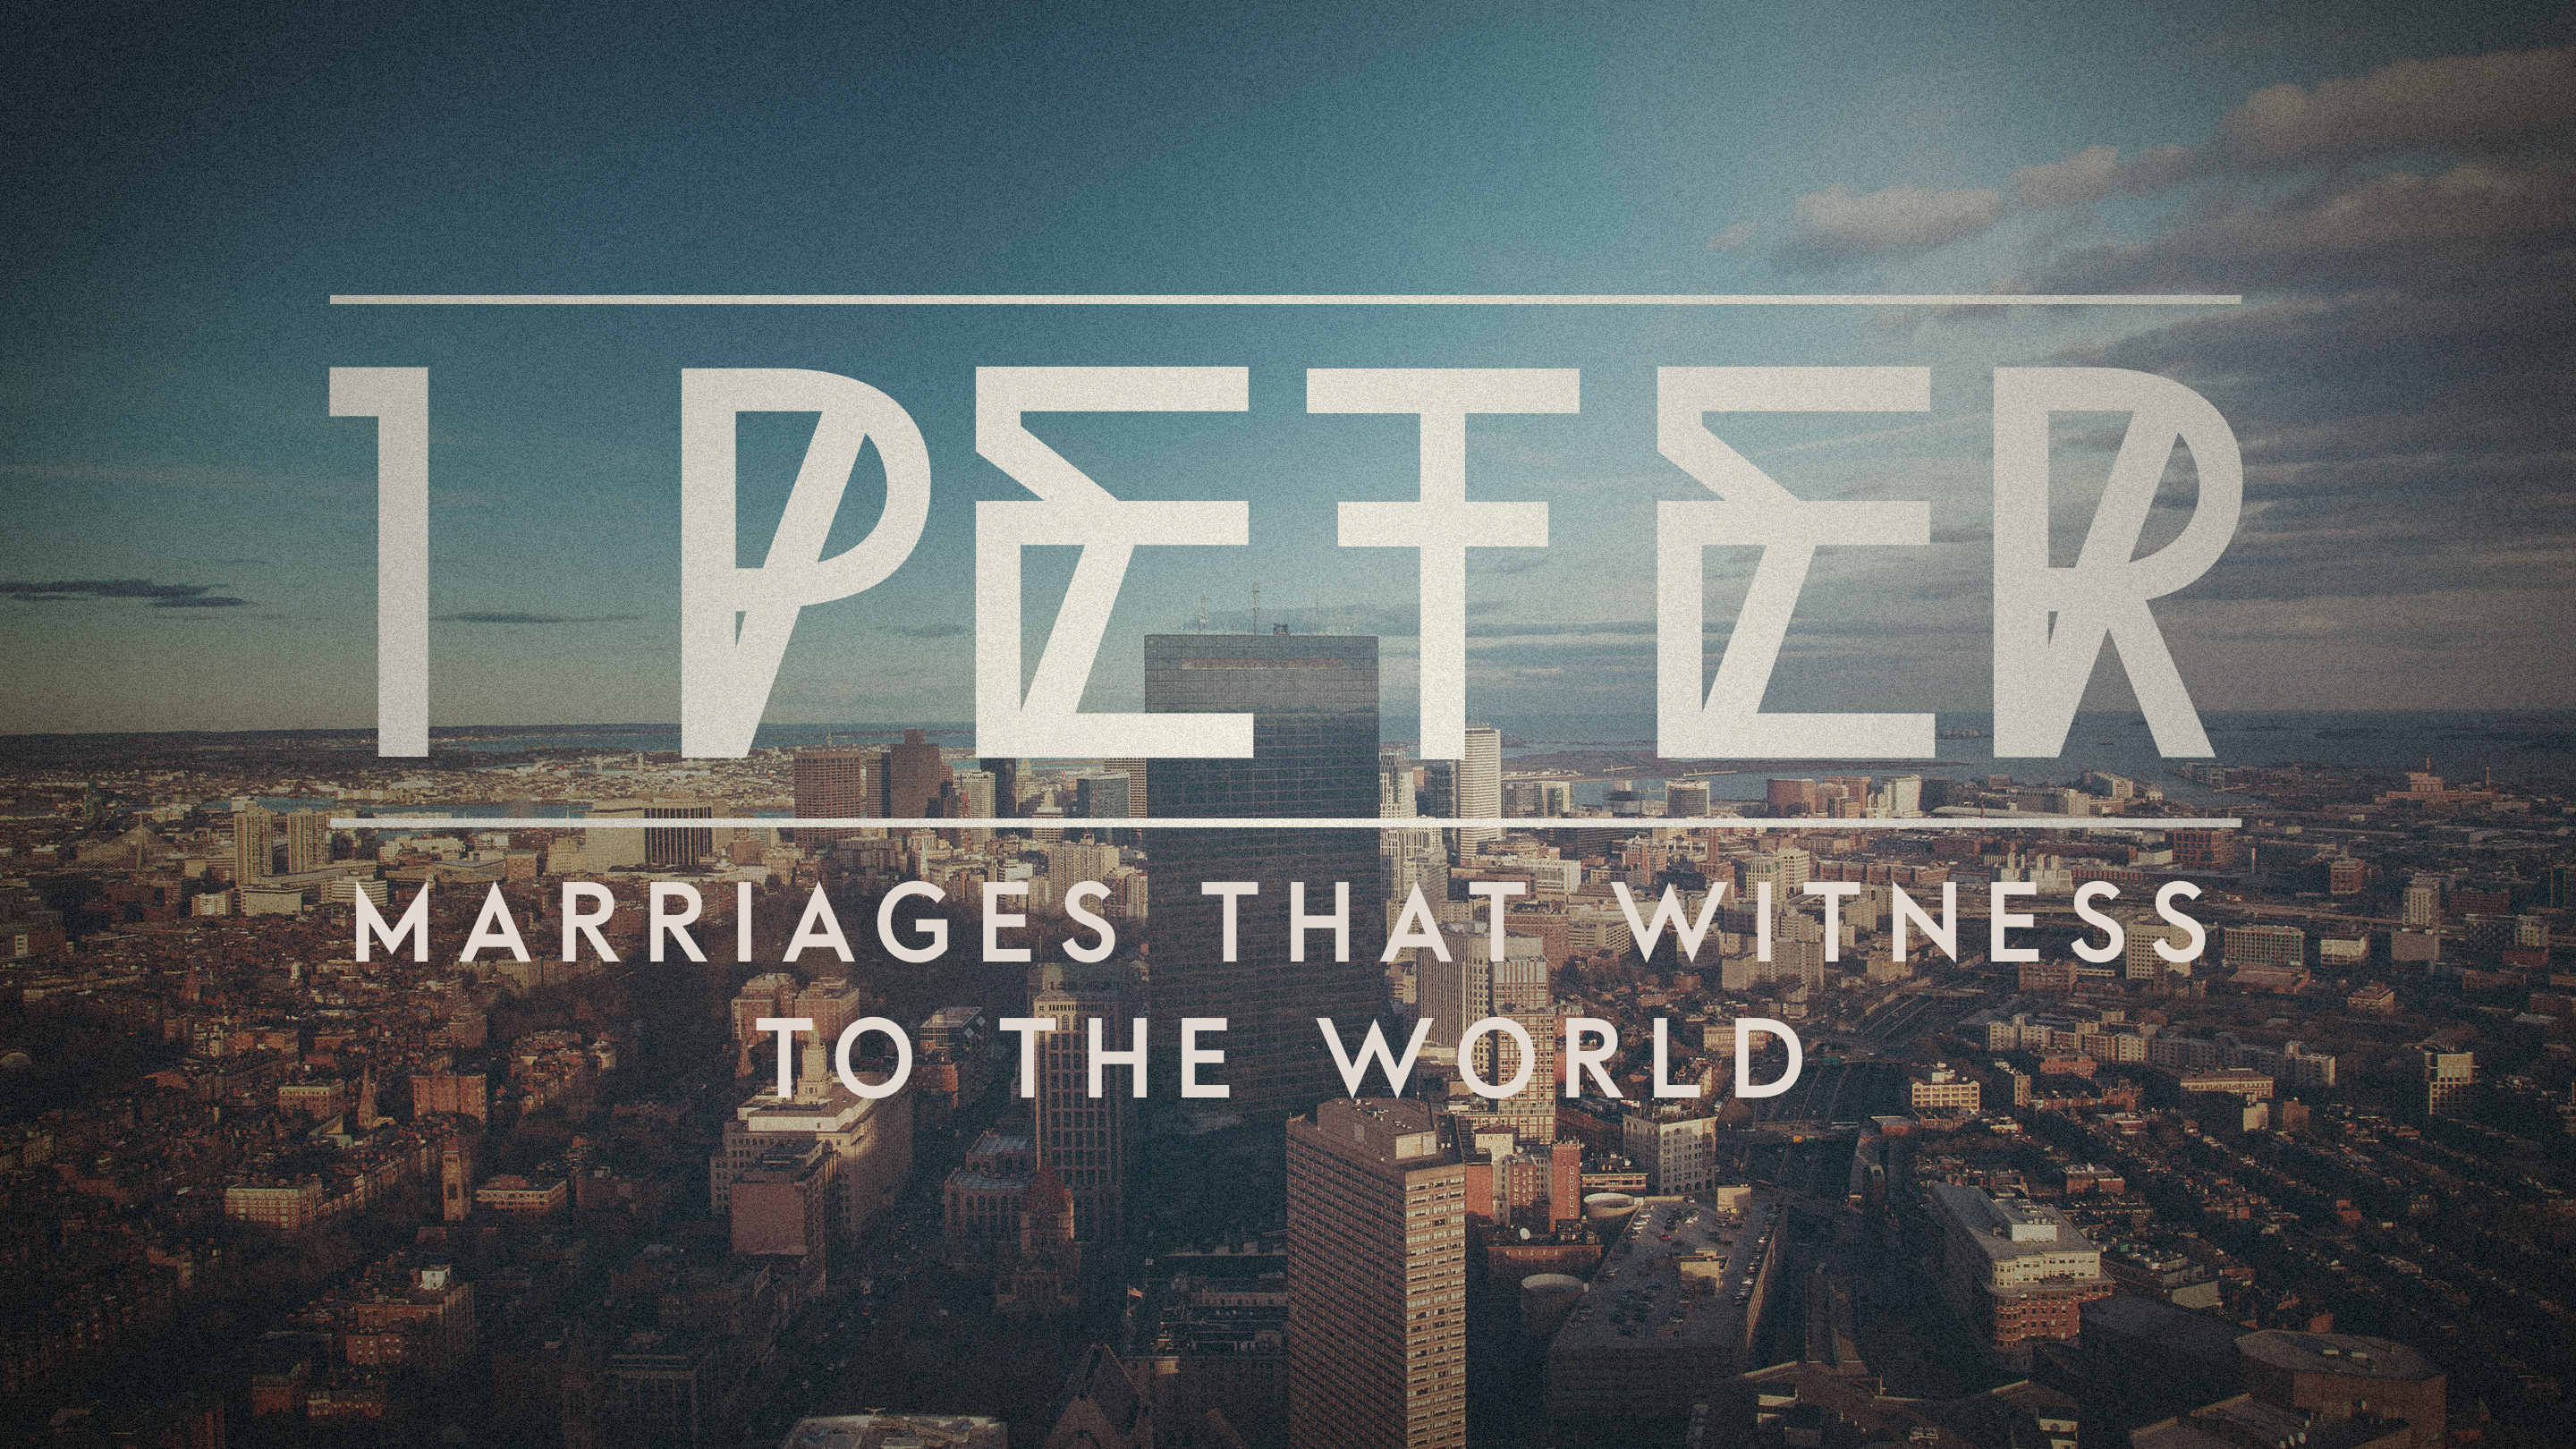 Marriages That Witness to the World